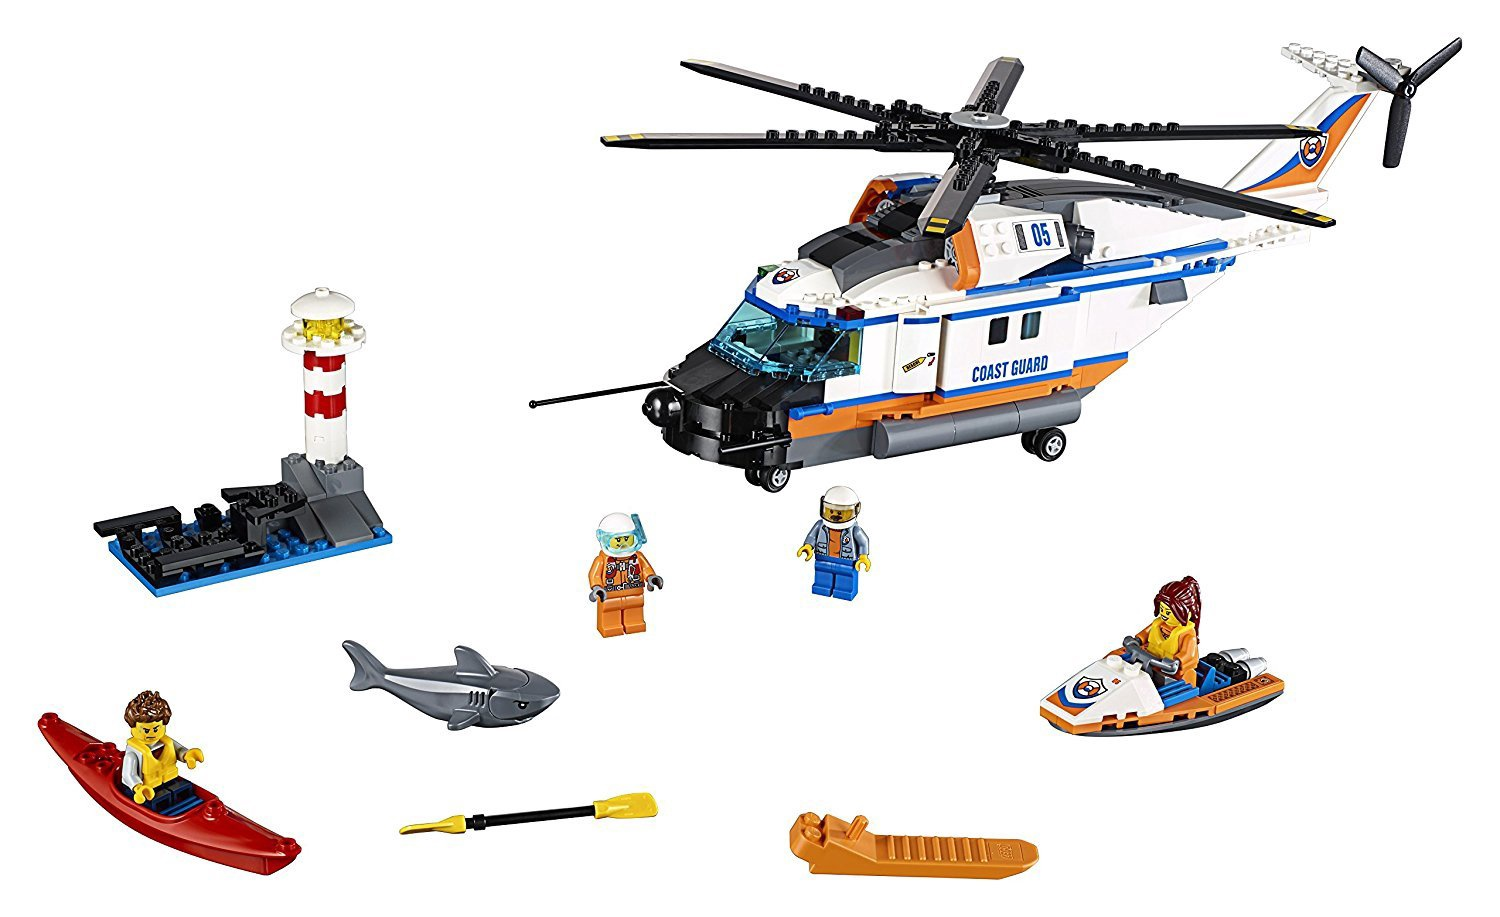 HEAVY DUTY RESCUE HELICOPTER